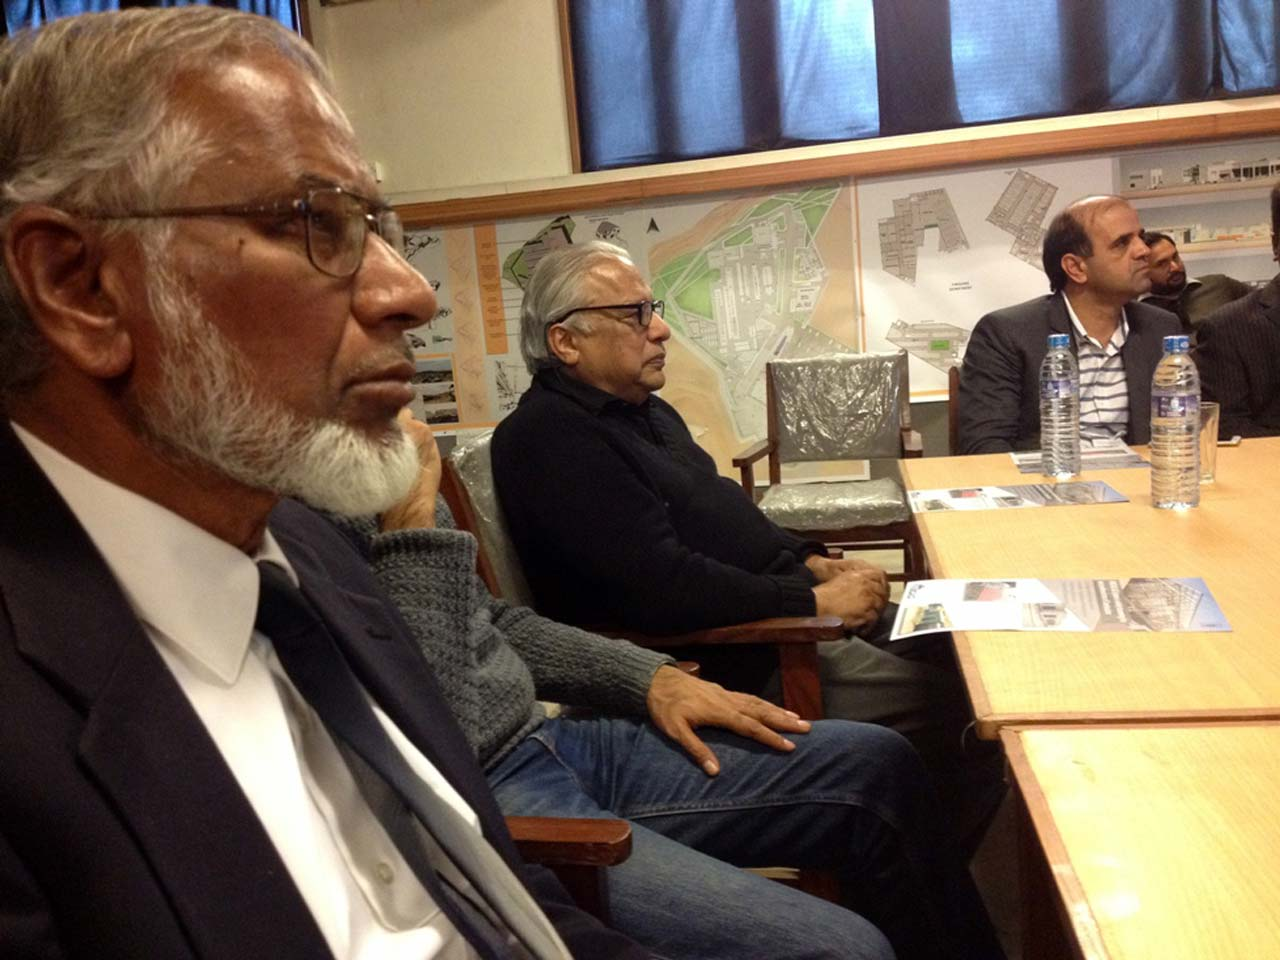 Engr. Col(R) Javed Majid and Arif Hasan watching the presentation by Engr. Badar Khan